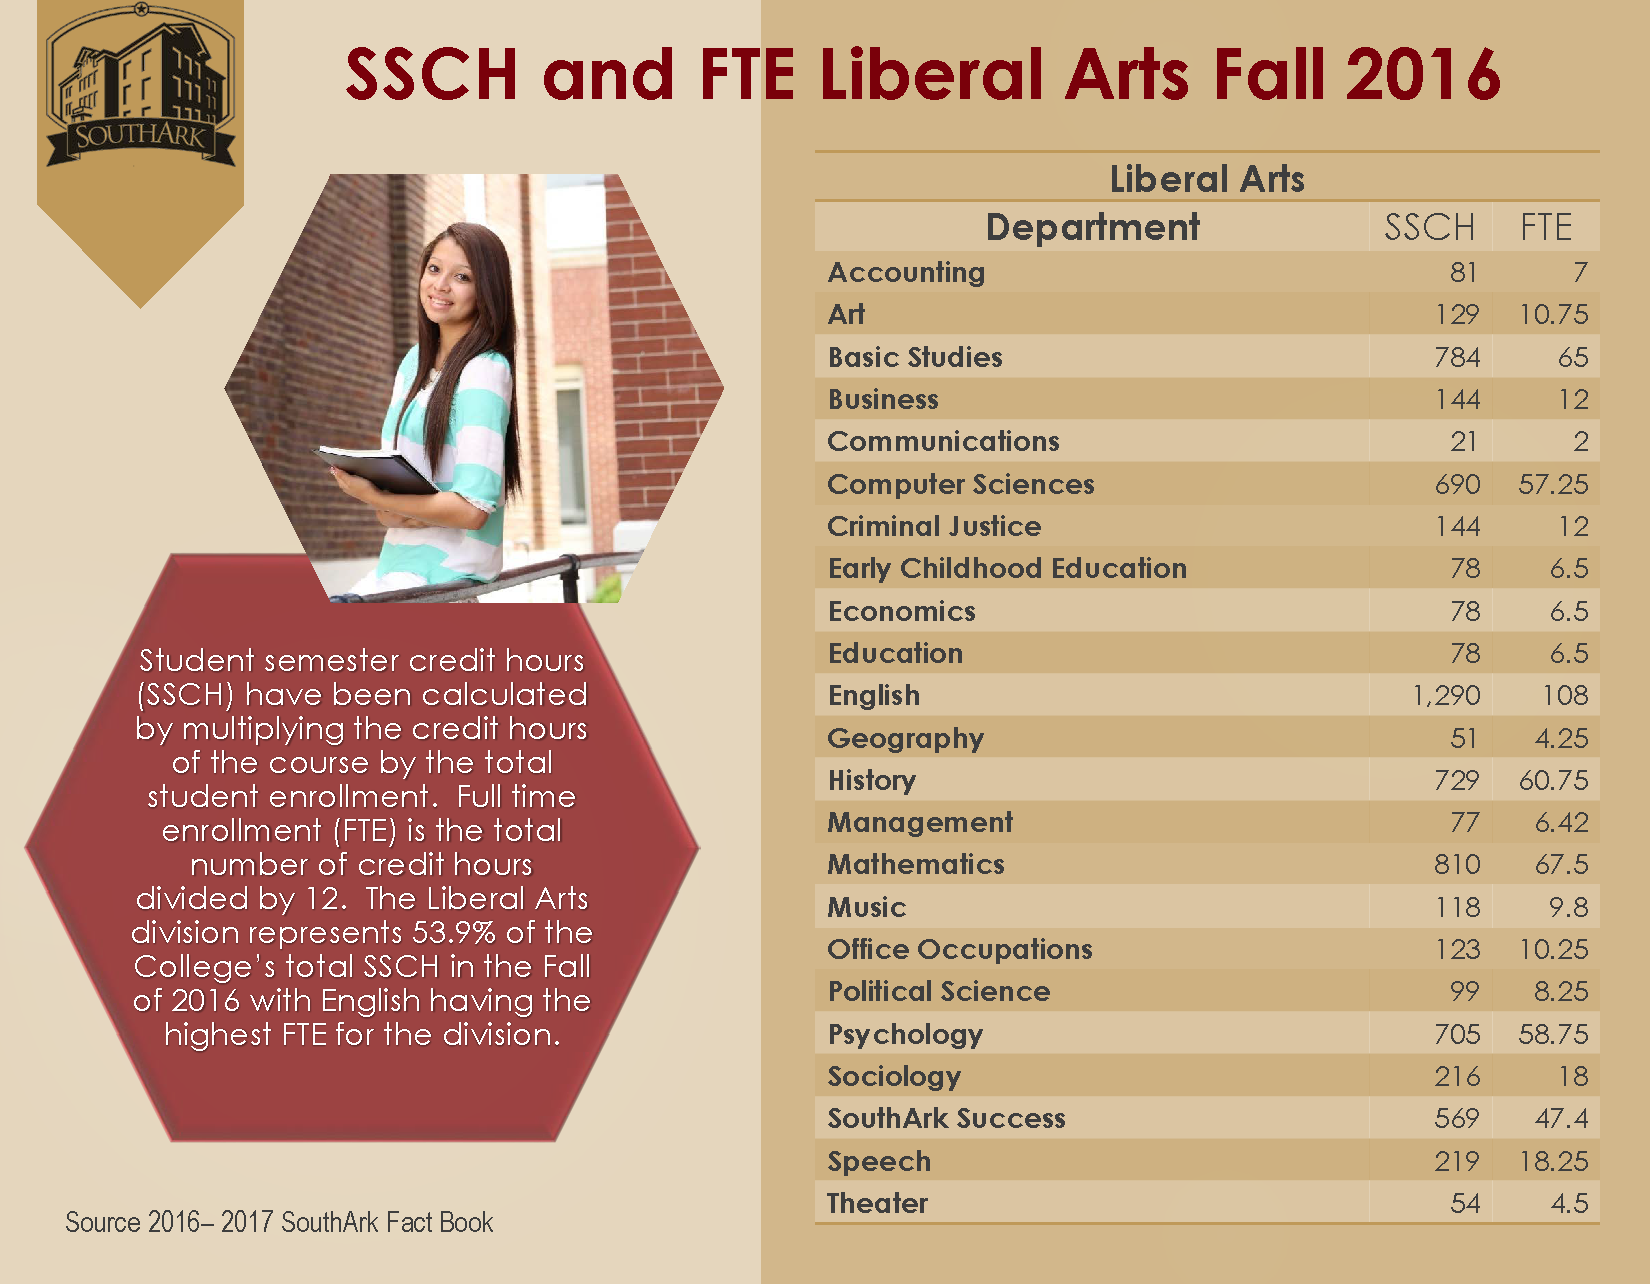 SSCH and FTE Liberal Arts